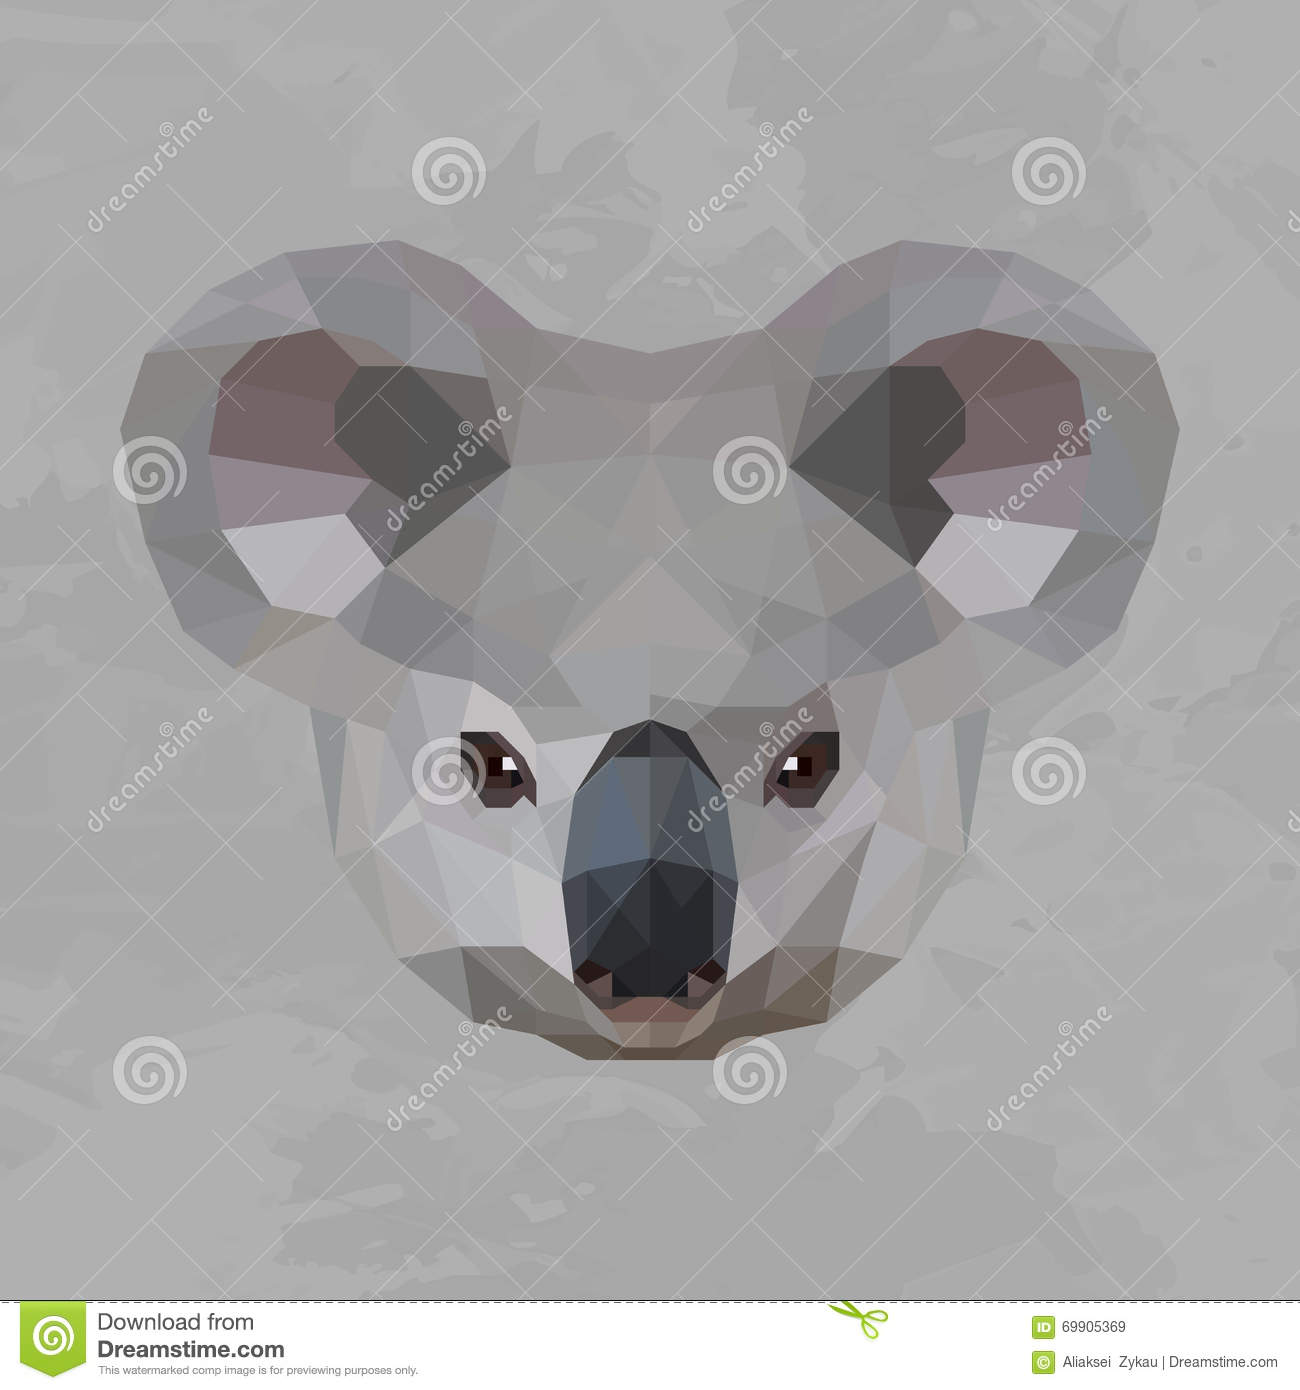 Koala Silhouette Stock Illustrations Vecteurs Clipart 610